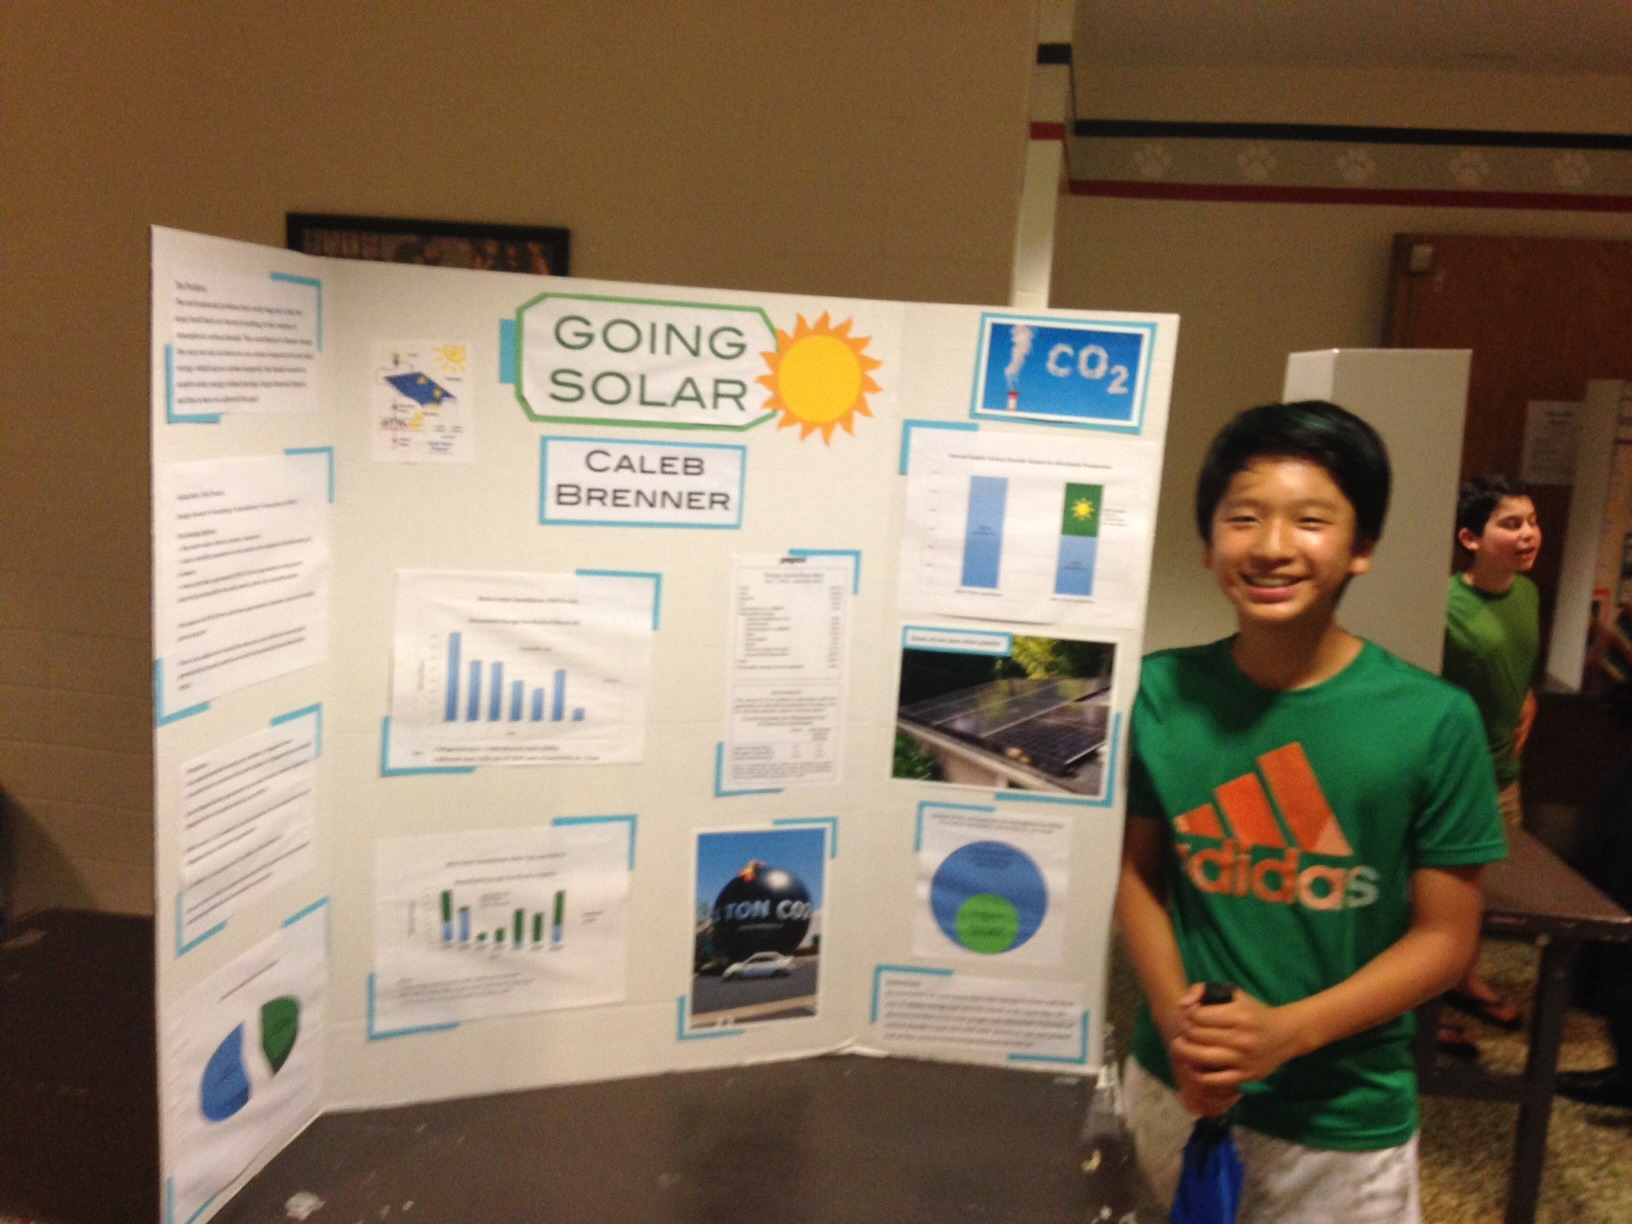 Energy Projects For Middle School : Energy project for middle school engineering